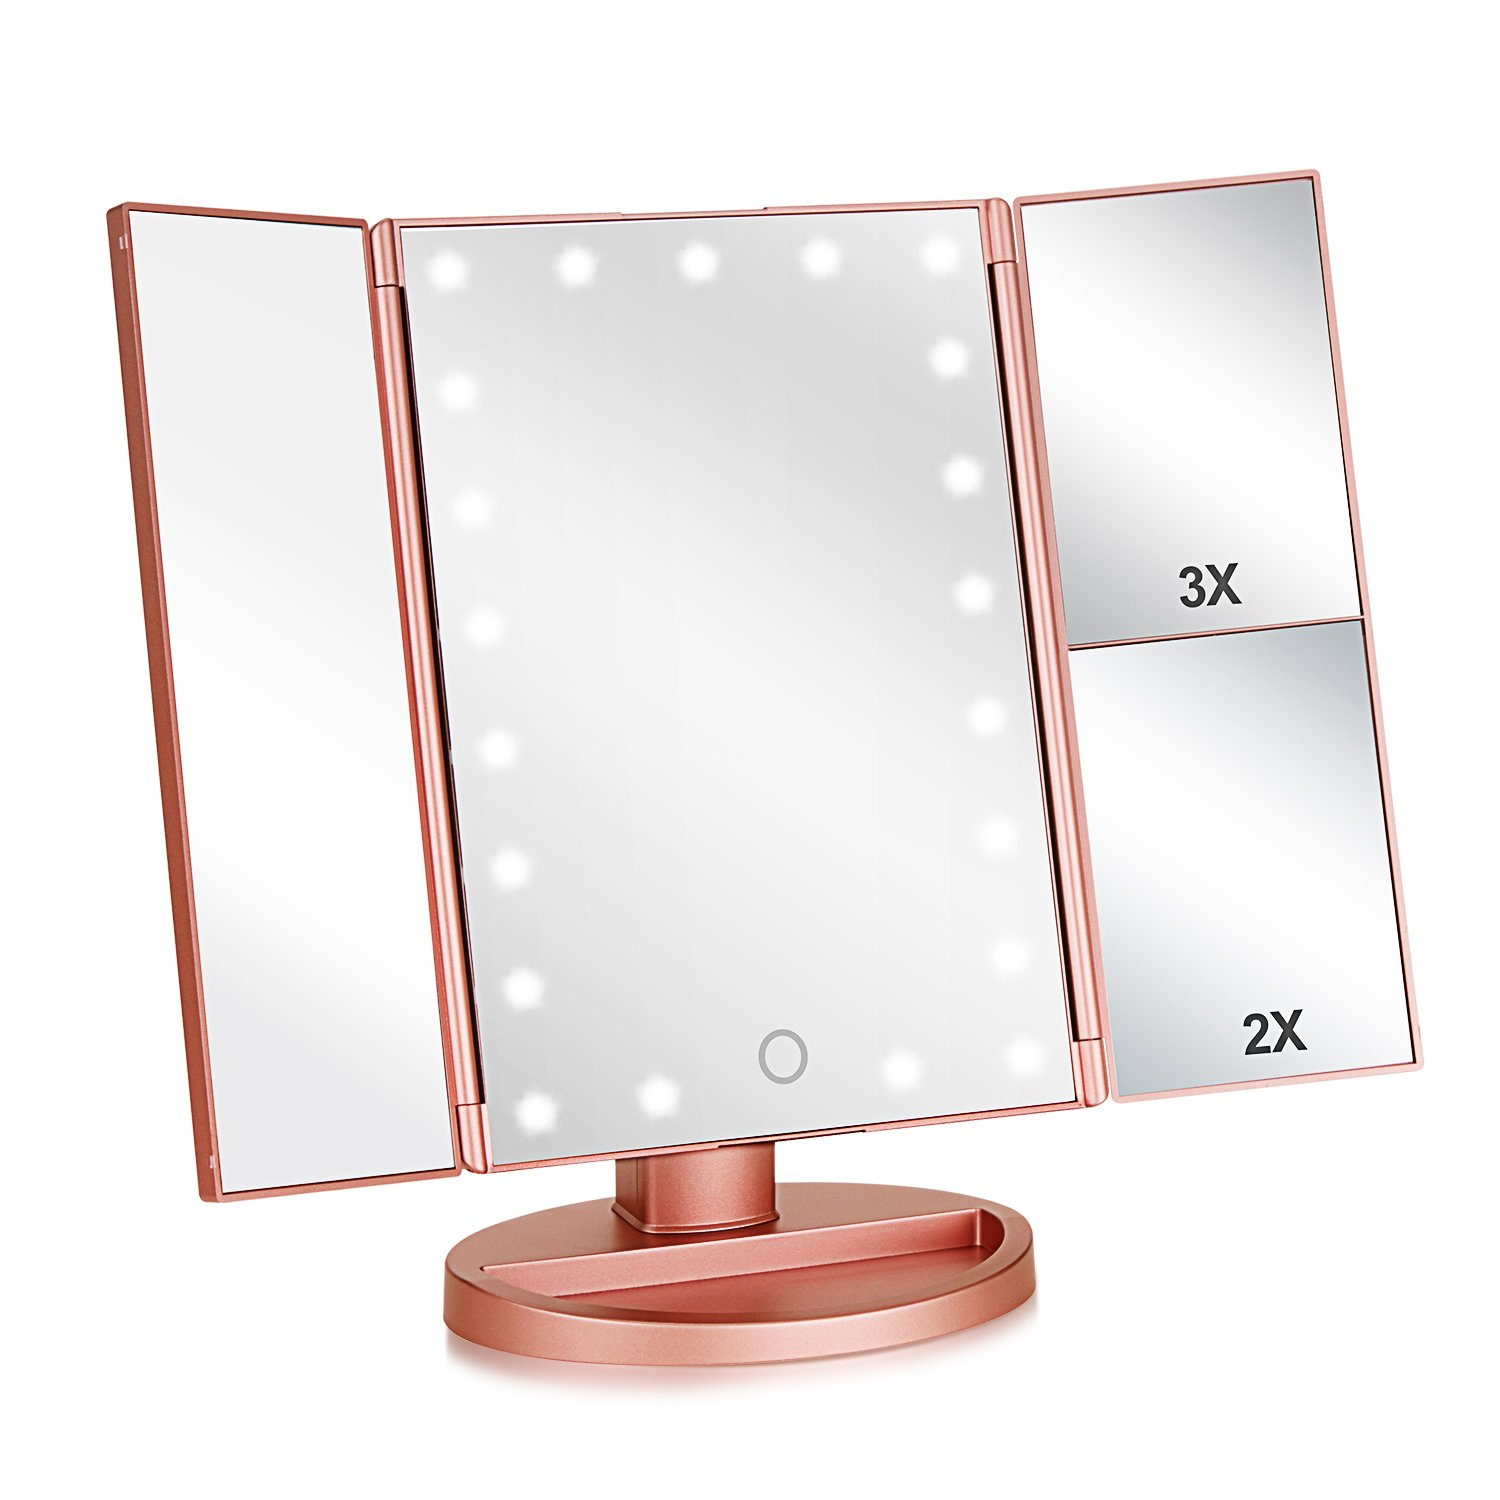 Tri-fold Lighted Vanity Makeup Mirror with 3x/2x/1x Magnification, 21Leds Light and Touch Screen,180 Degree Free Rotation Countertop Cosmetic Mirror,Travel Makeup Mirror (Rose Gold) by Wudeweike